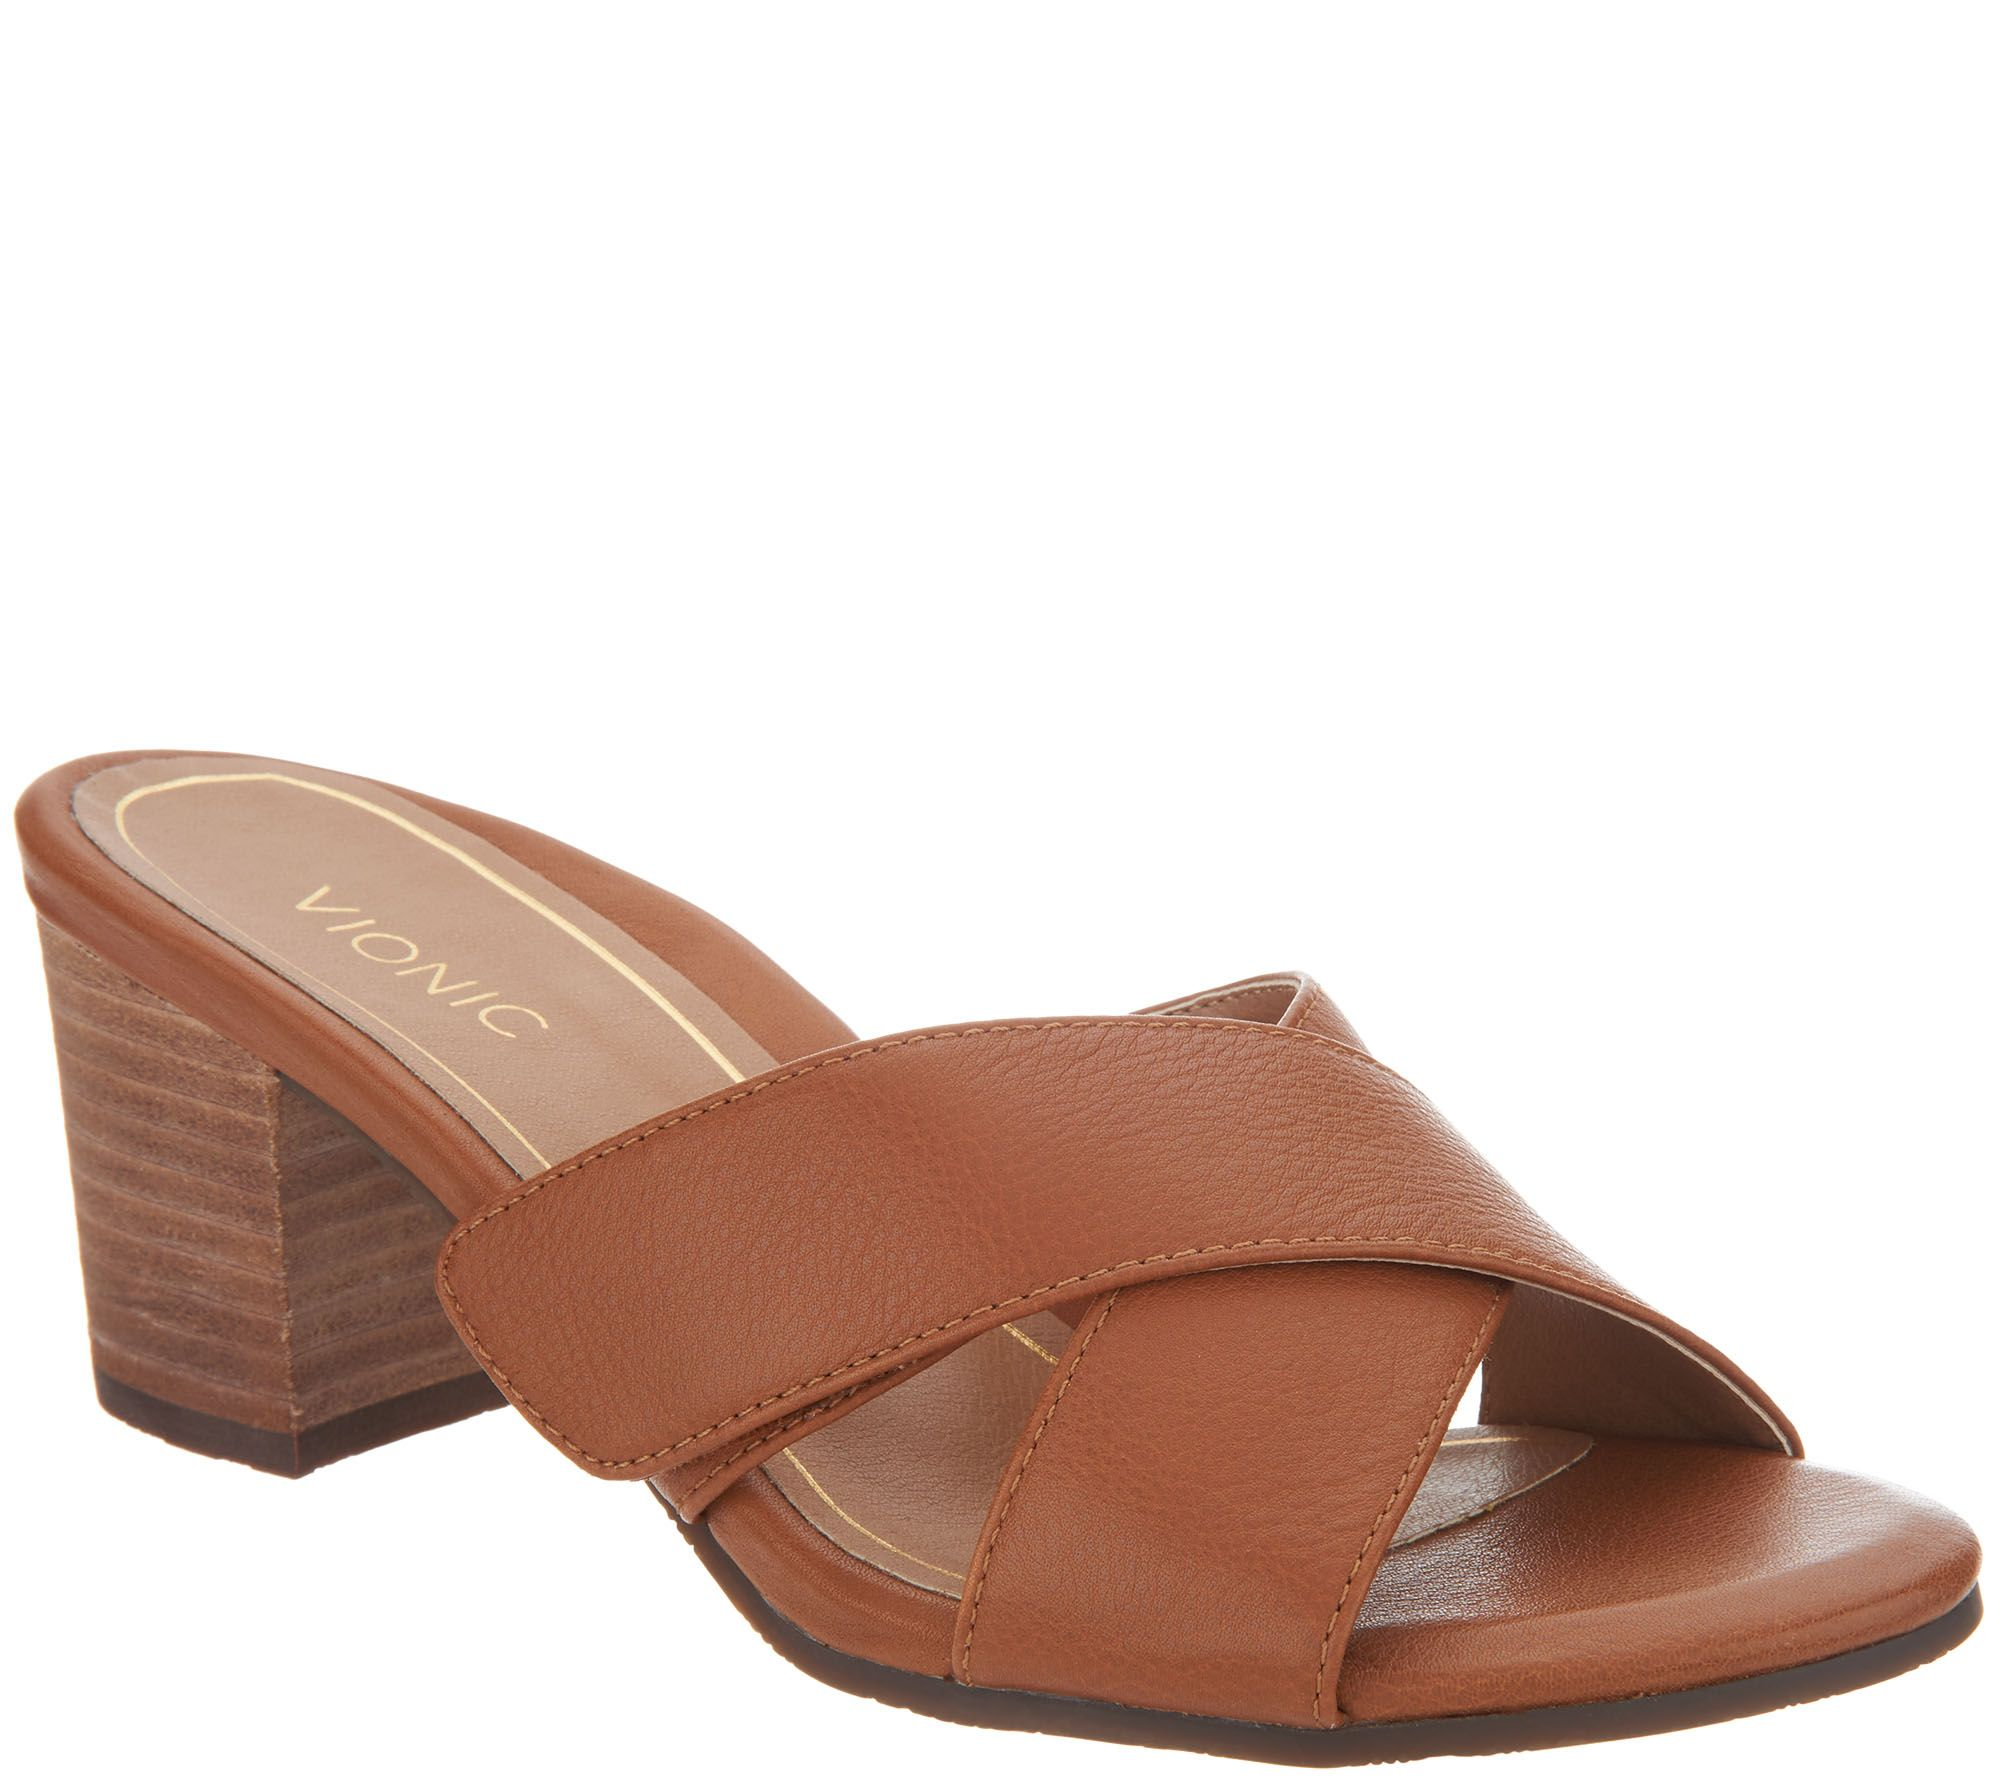 Vionic Leather Cross Strap Heel - Lorne real cheap really buy authentic online my0CY